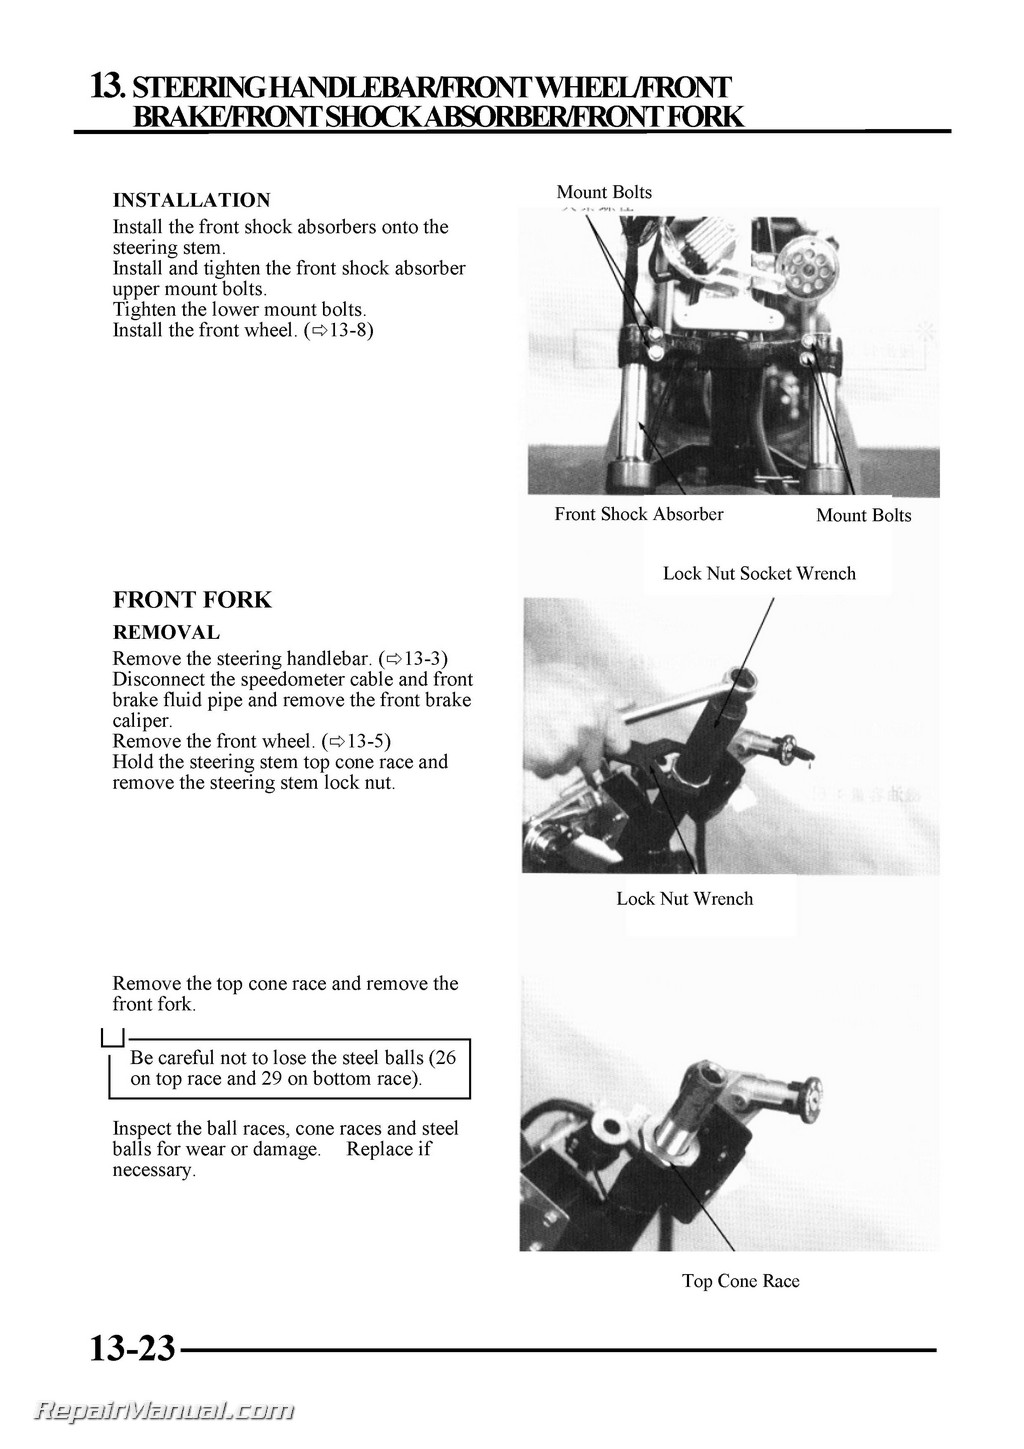 cobra 50 atv wiring diagram chinese 110cc atv wiring diagram 50 70 90 kymco cobra 50 - top boy scooter service manual printed by ...